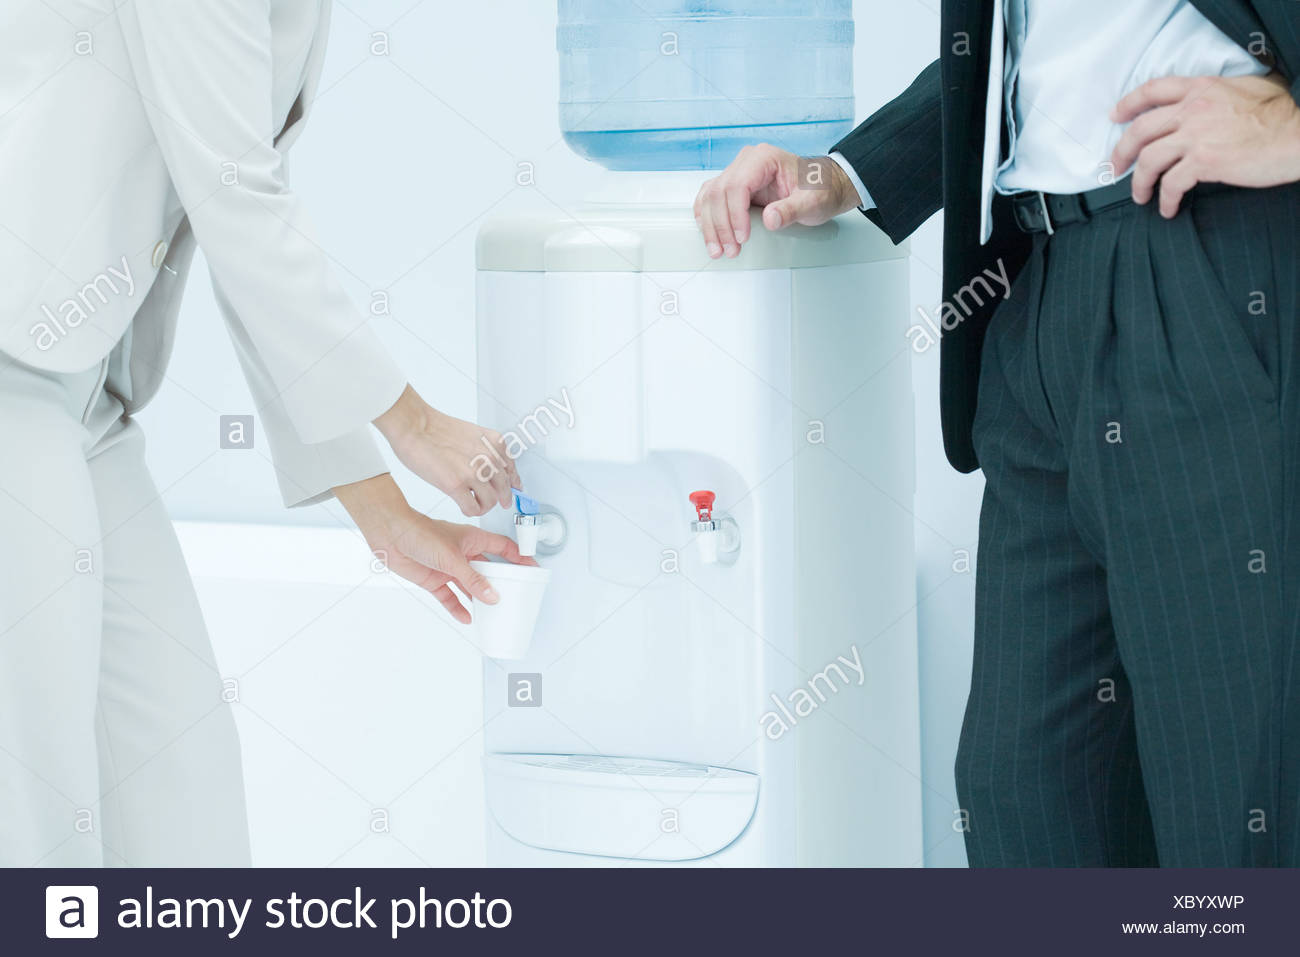 Professional woman filling disposable cup with water from water cooler, male colleague standing nearby, cropped view - Stock Image